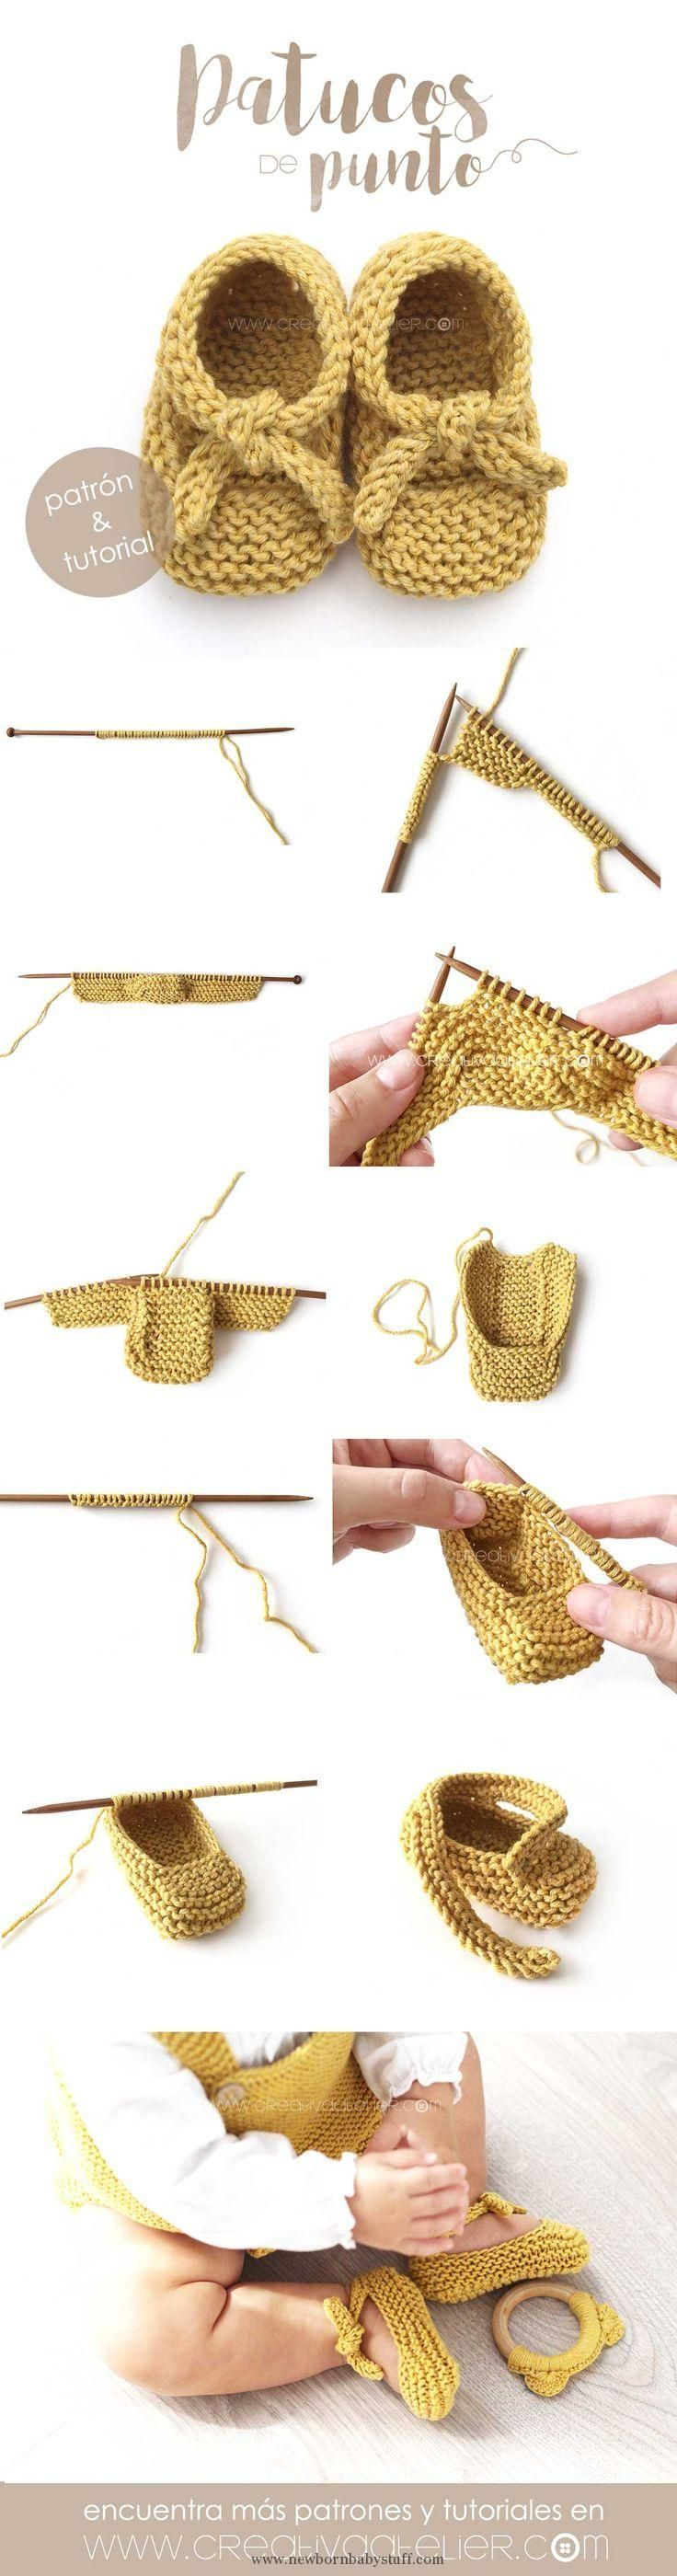 13 best Tejidos images on Pinterest | Knitting patterns, Knit ...